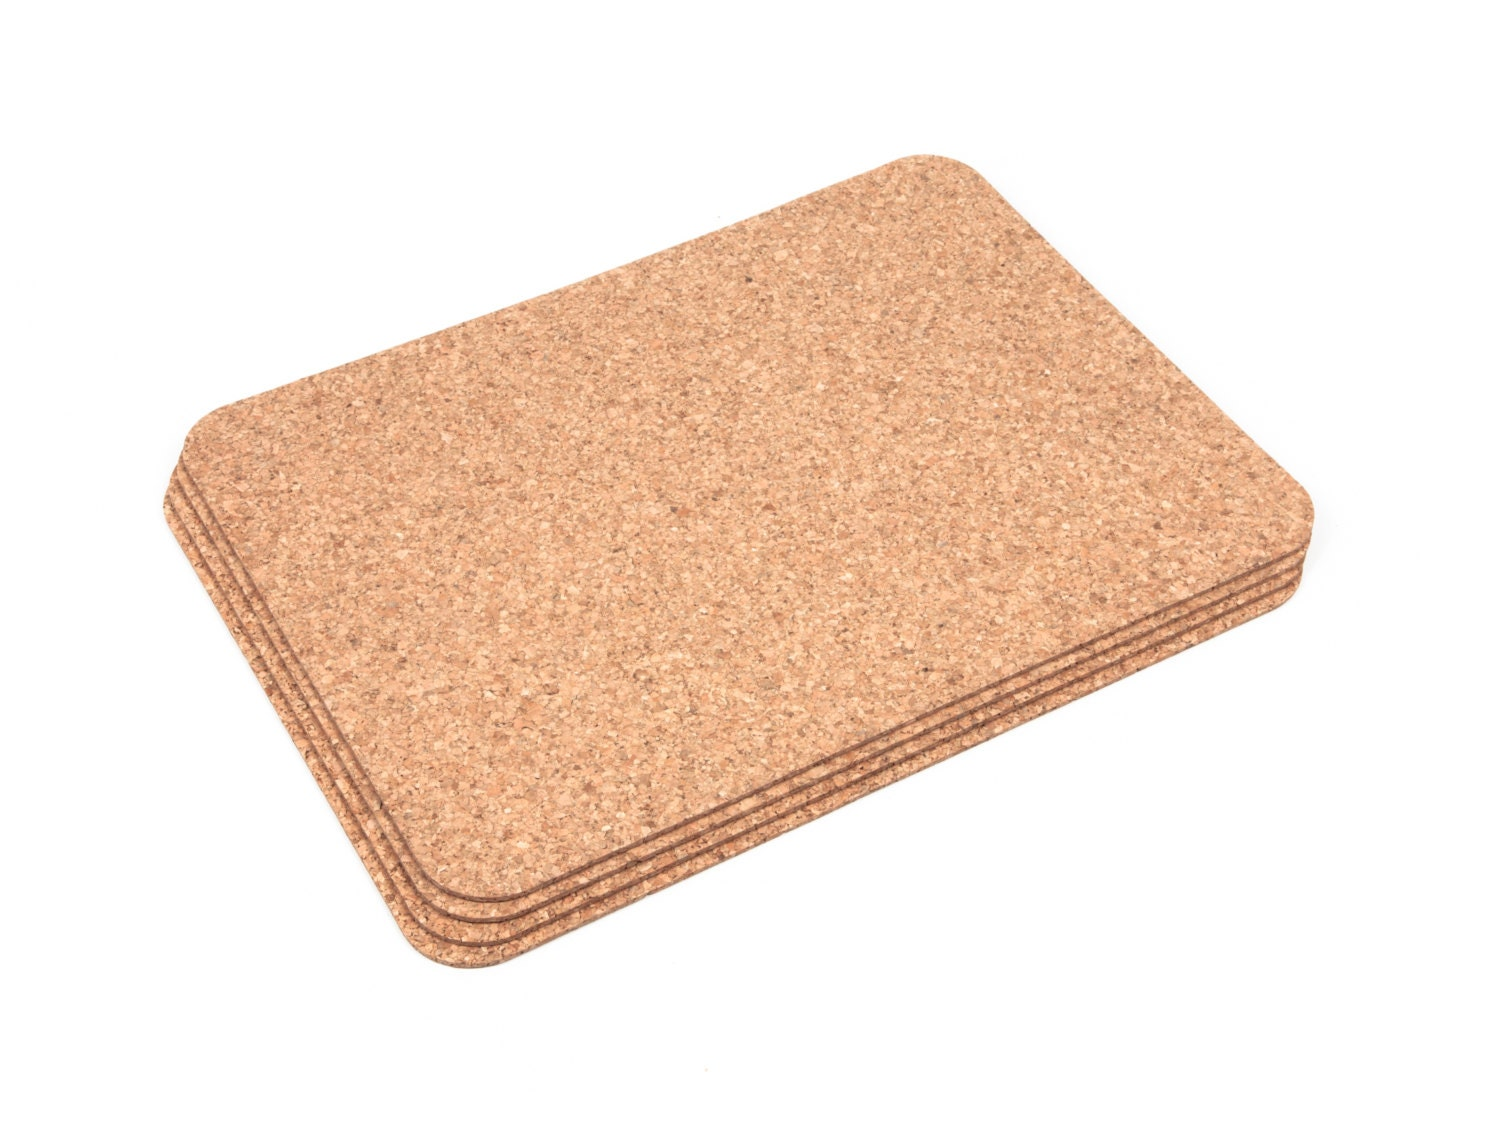 Rectangular cork placemats table mats dining pack of 4 for Table placemats